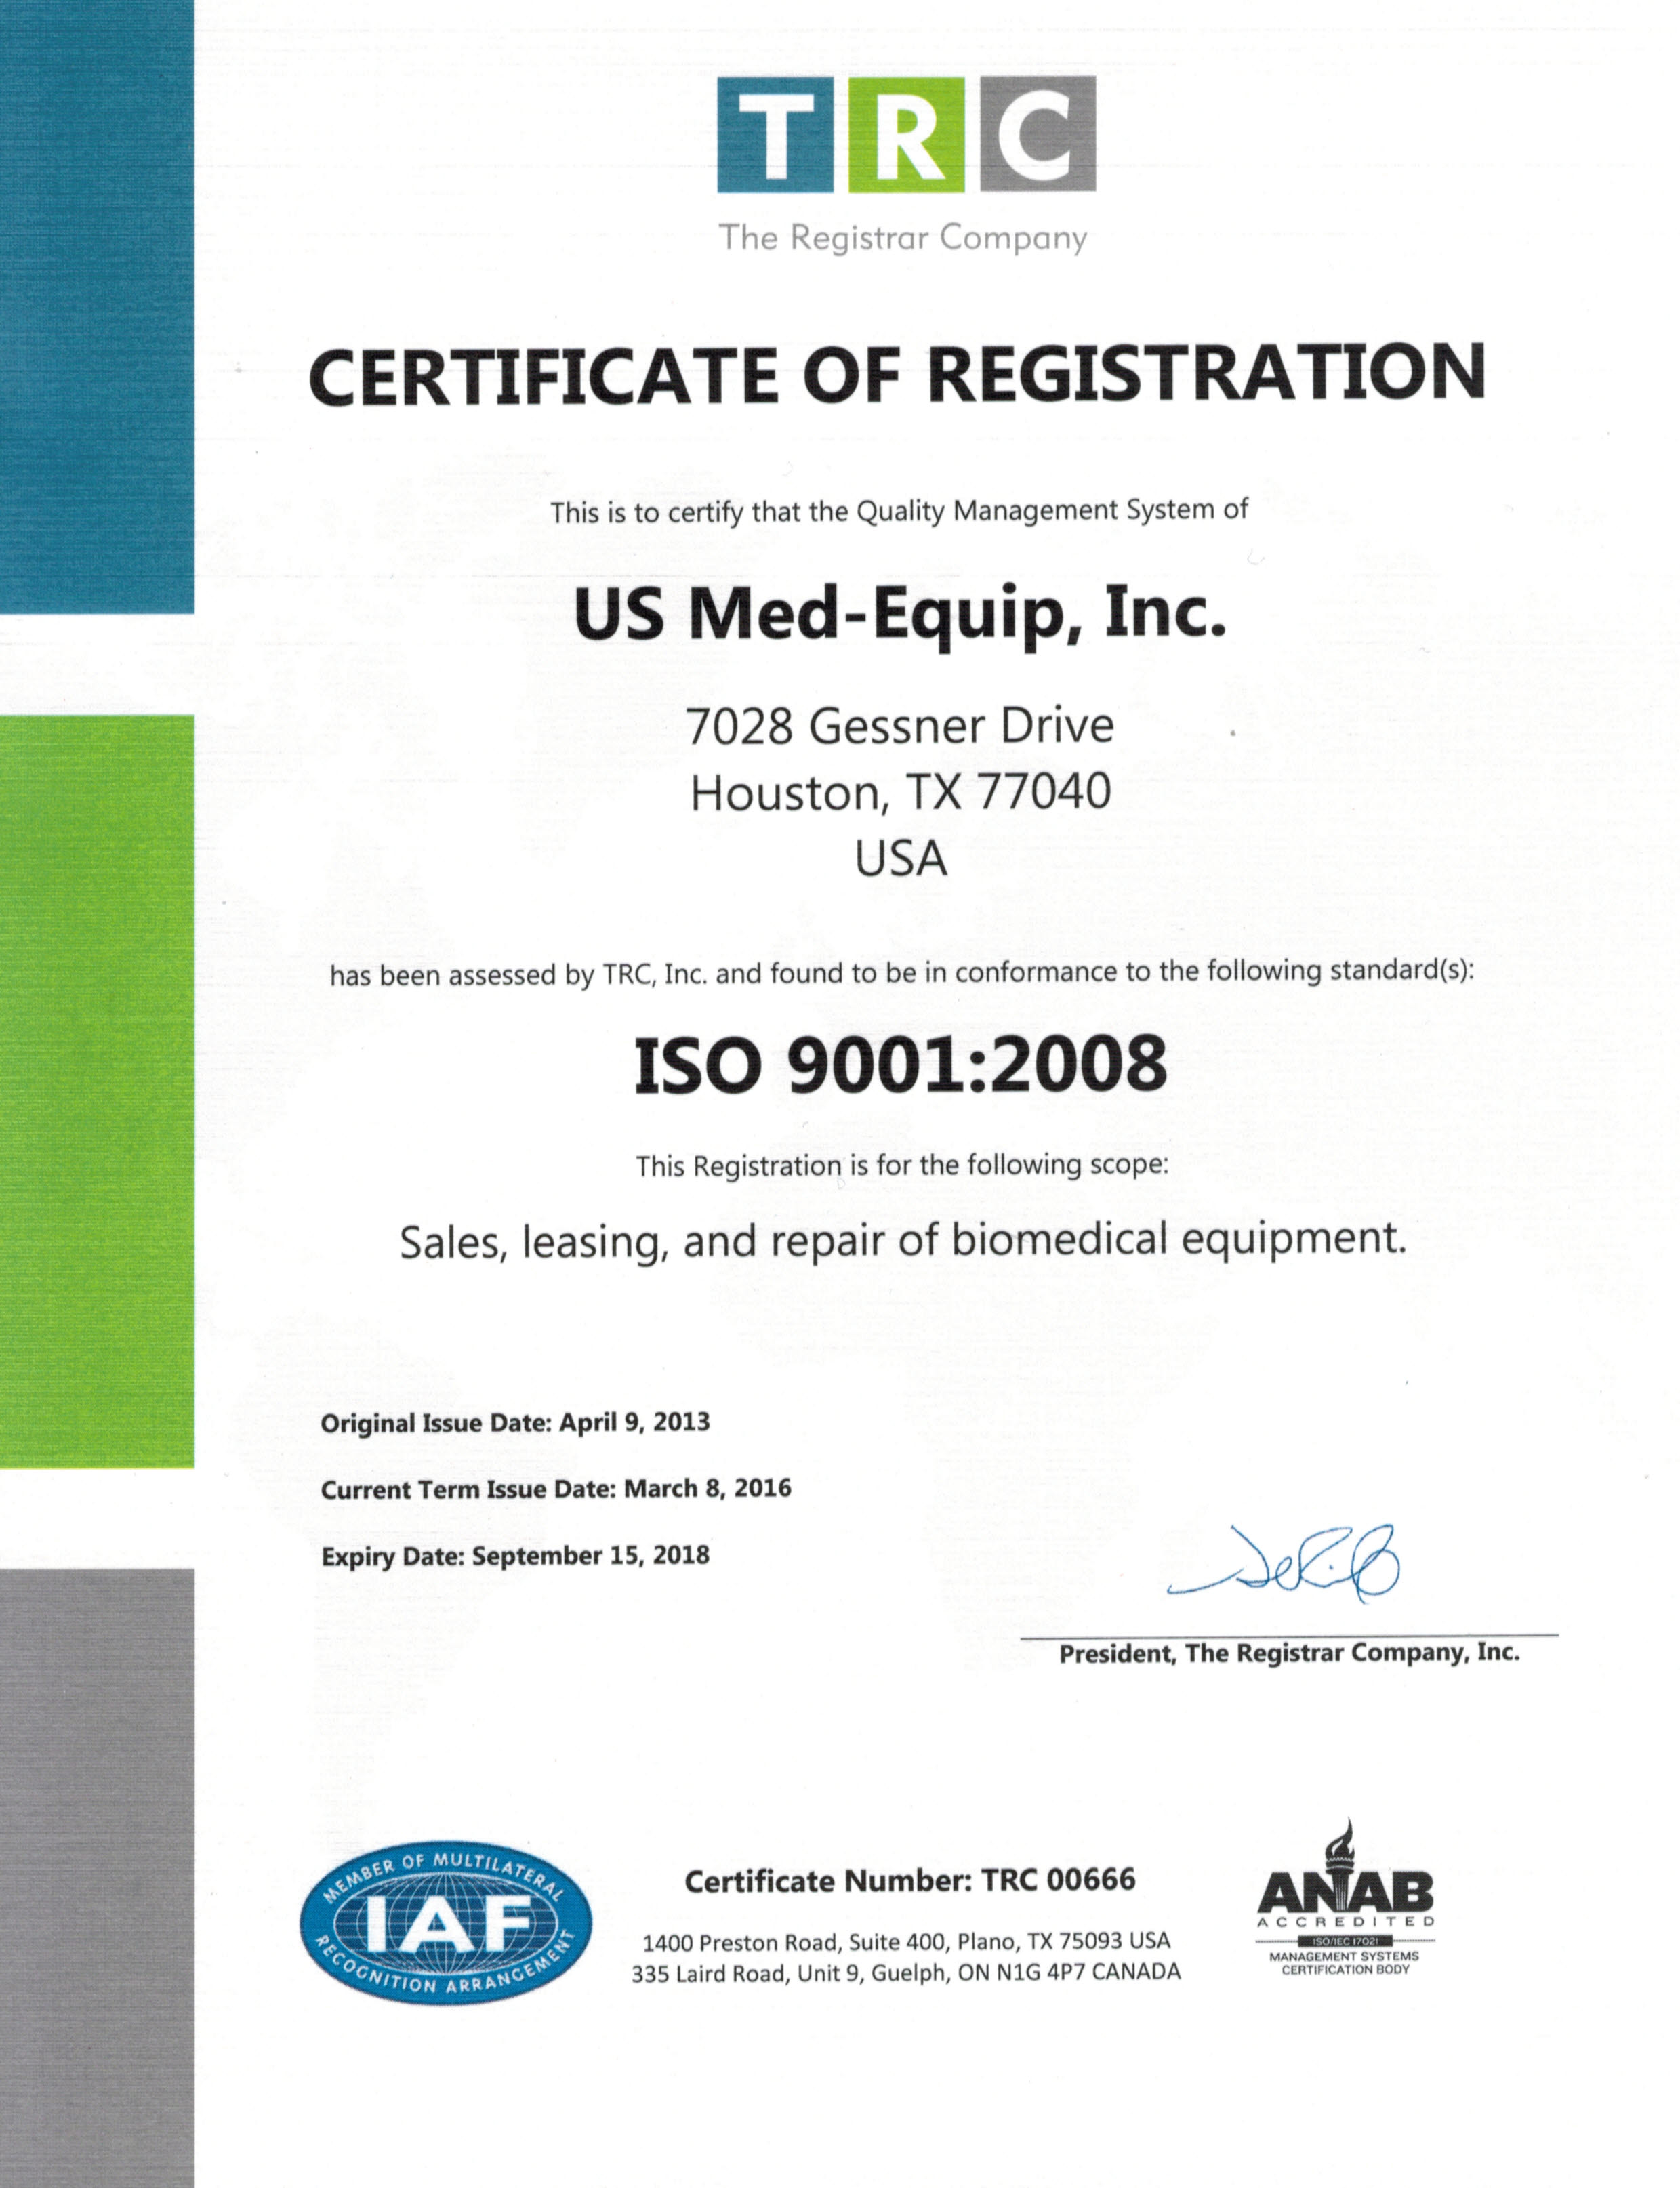 Iso 90012008 certified us med equipus med equip since 2013 us med equip has been certified under the strict standards of the iso 90012008 program for our medical equipment management processing system xflitez Choice Image